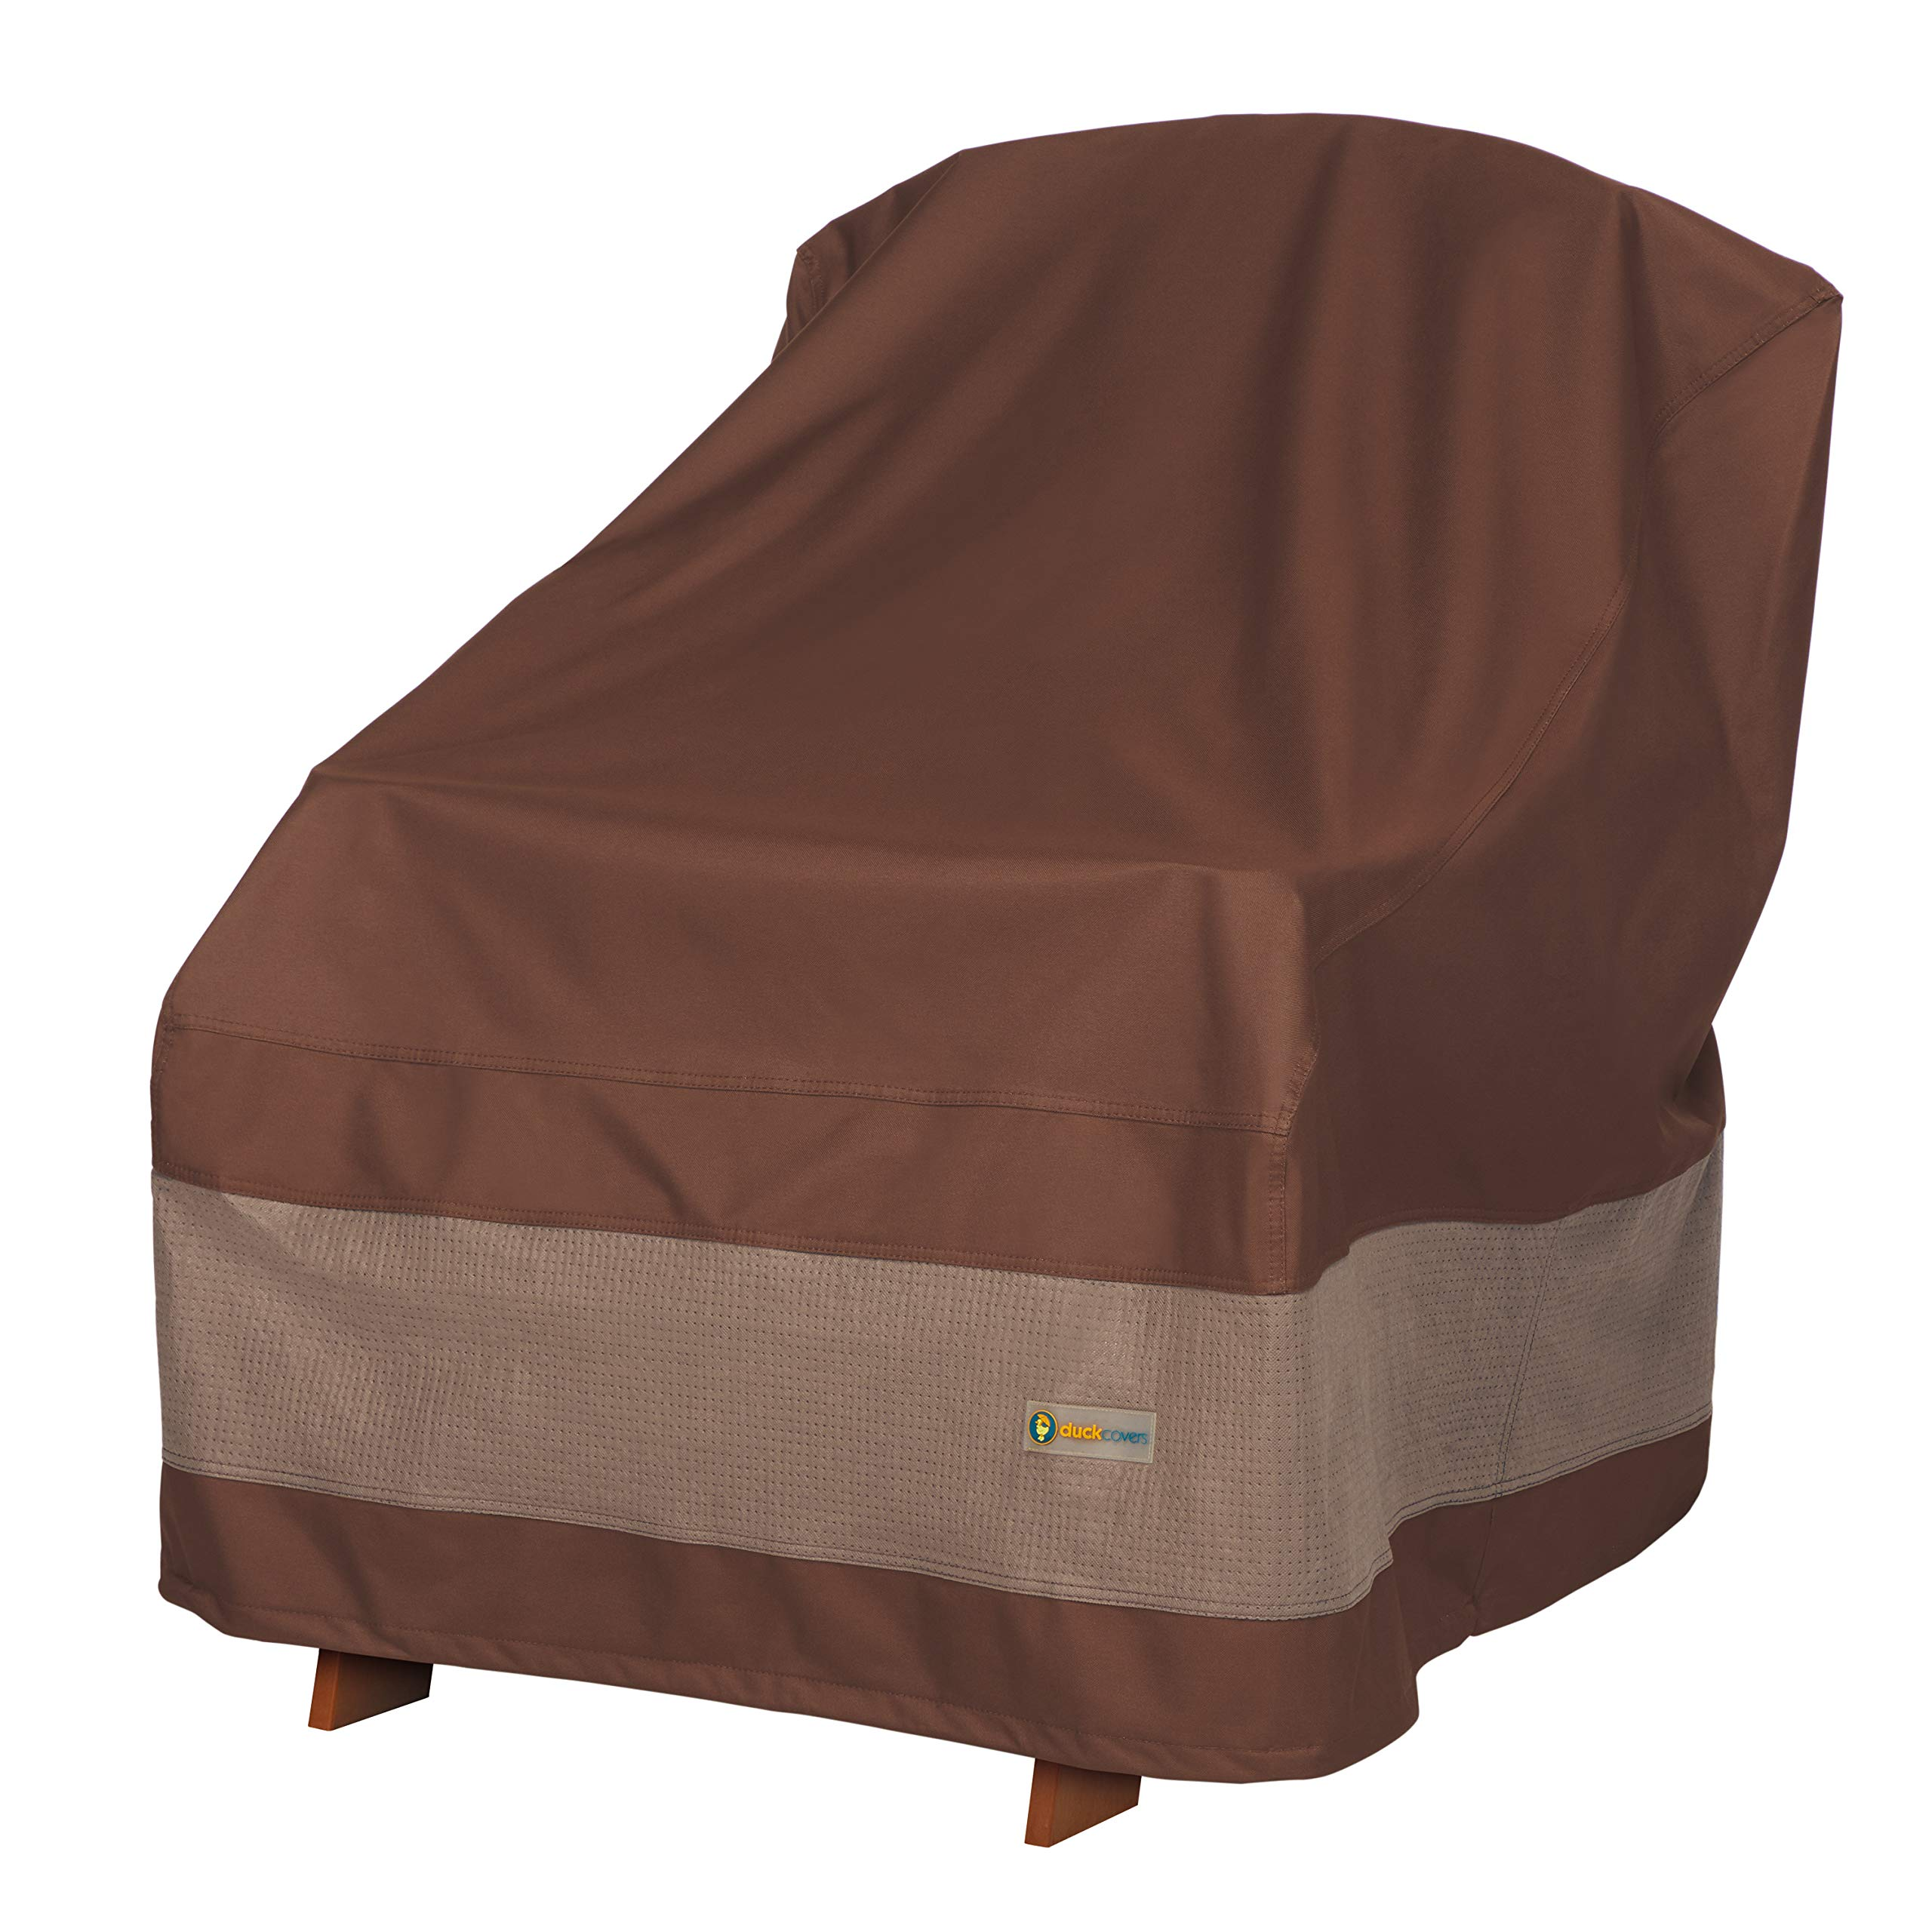 Duck Covers Ultimate Adirondack Chair Cover